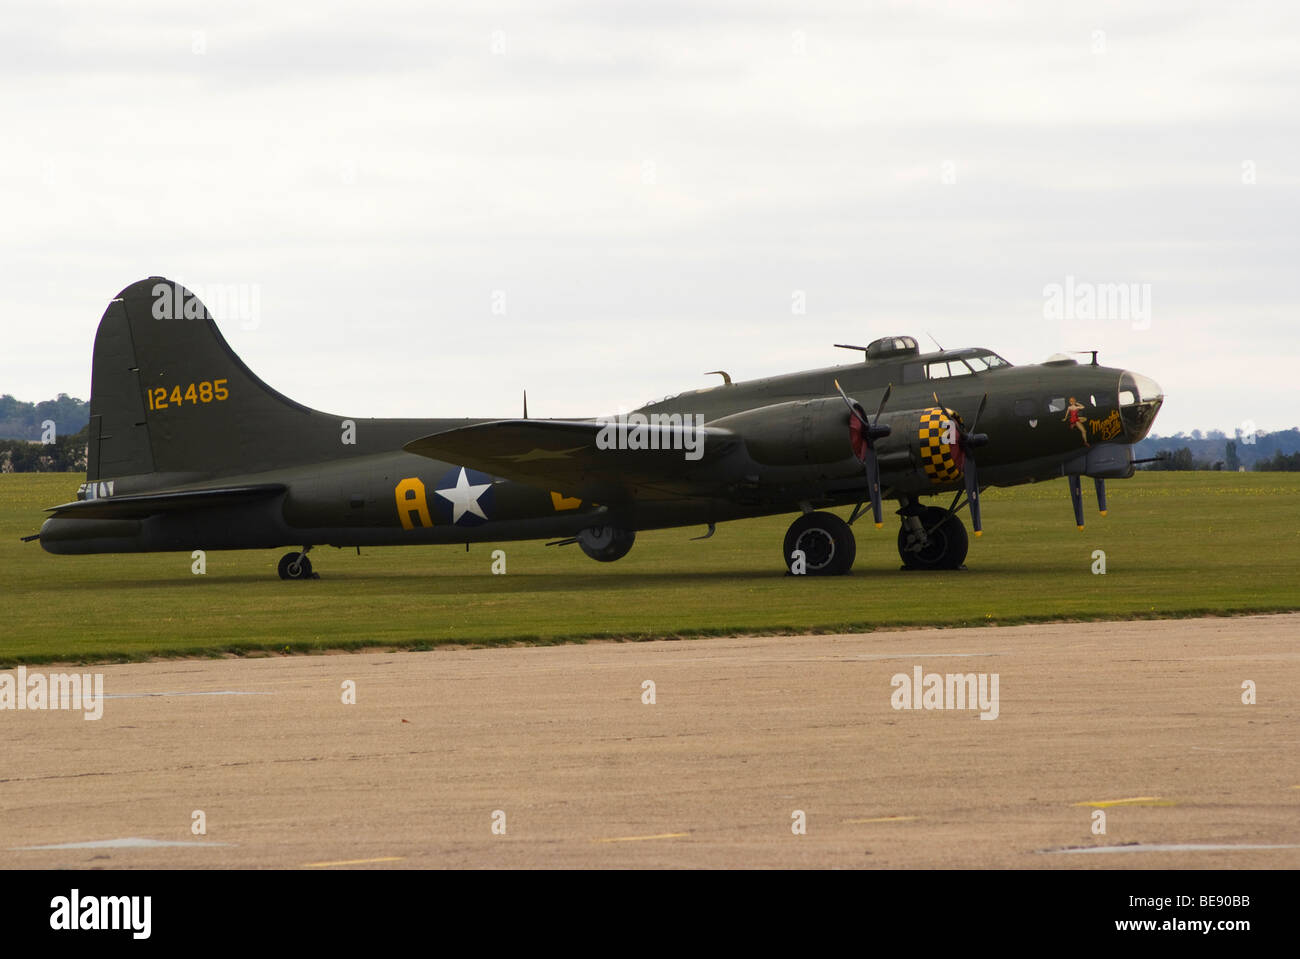 Boeing B-17G Flying Fortress Bomber Aircraft Memphis Belle 124485 on Apron at IWM Duxford Aerodrome England United Stock Photo